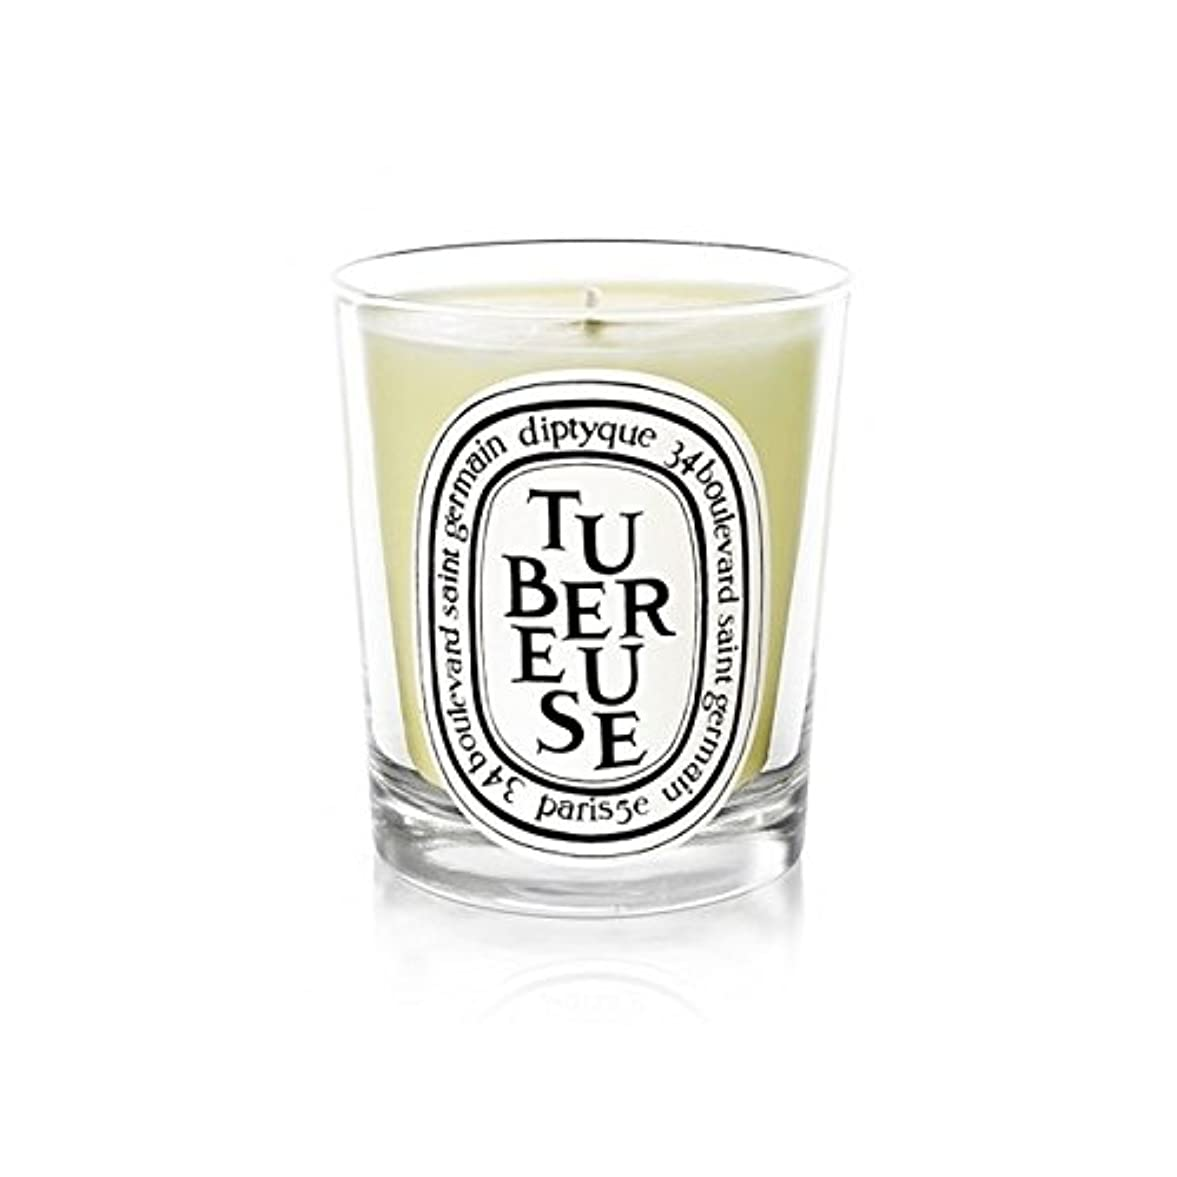 Diptyque Candle Tub?reuse / Tuberose 70g (Pack of 6) - DiptyqueキャンドルTub?reuse/月下の70グラム (x6) [並行輸入品]